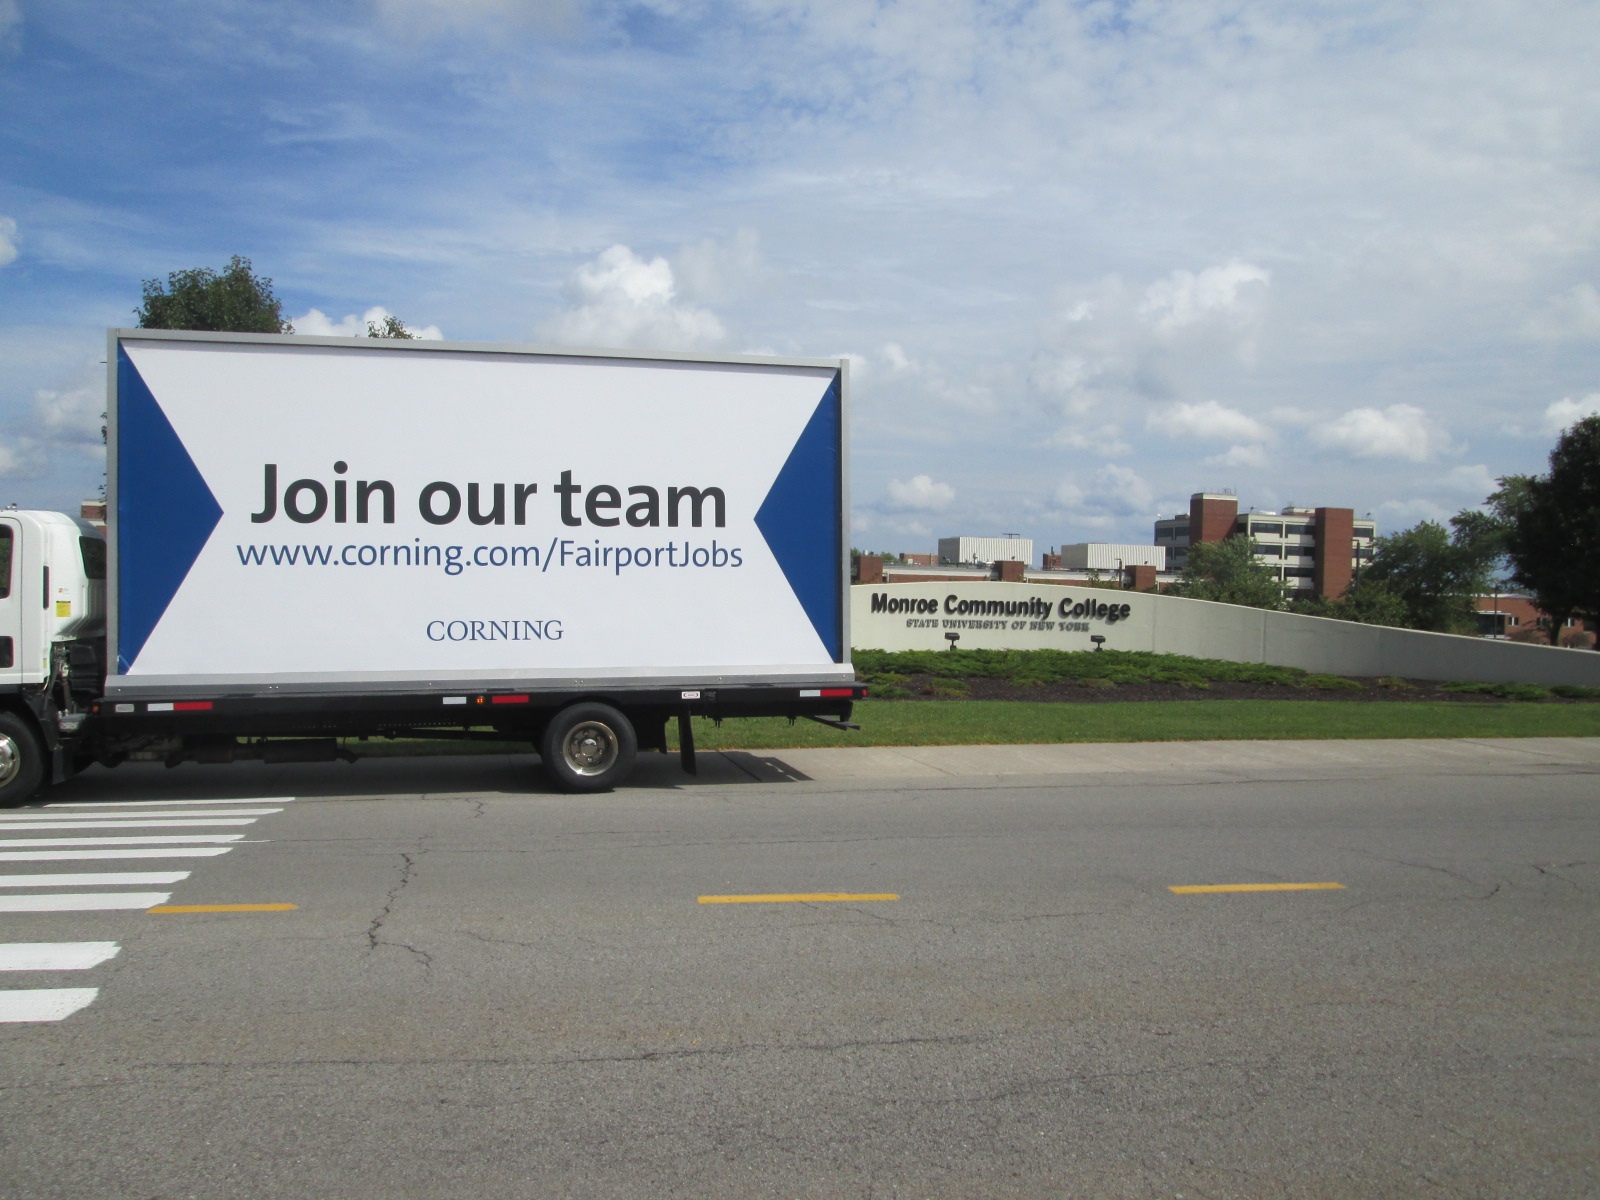 Join Our Team Mobile Billboard at Monroe Community College